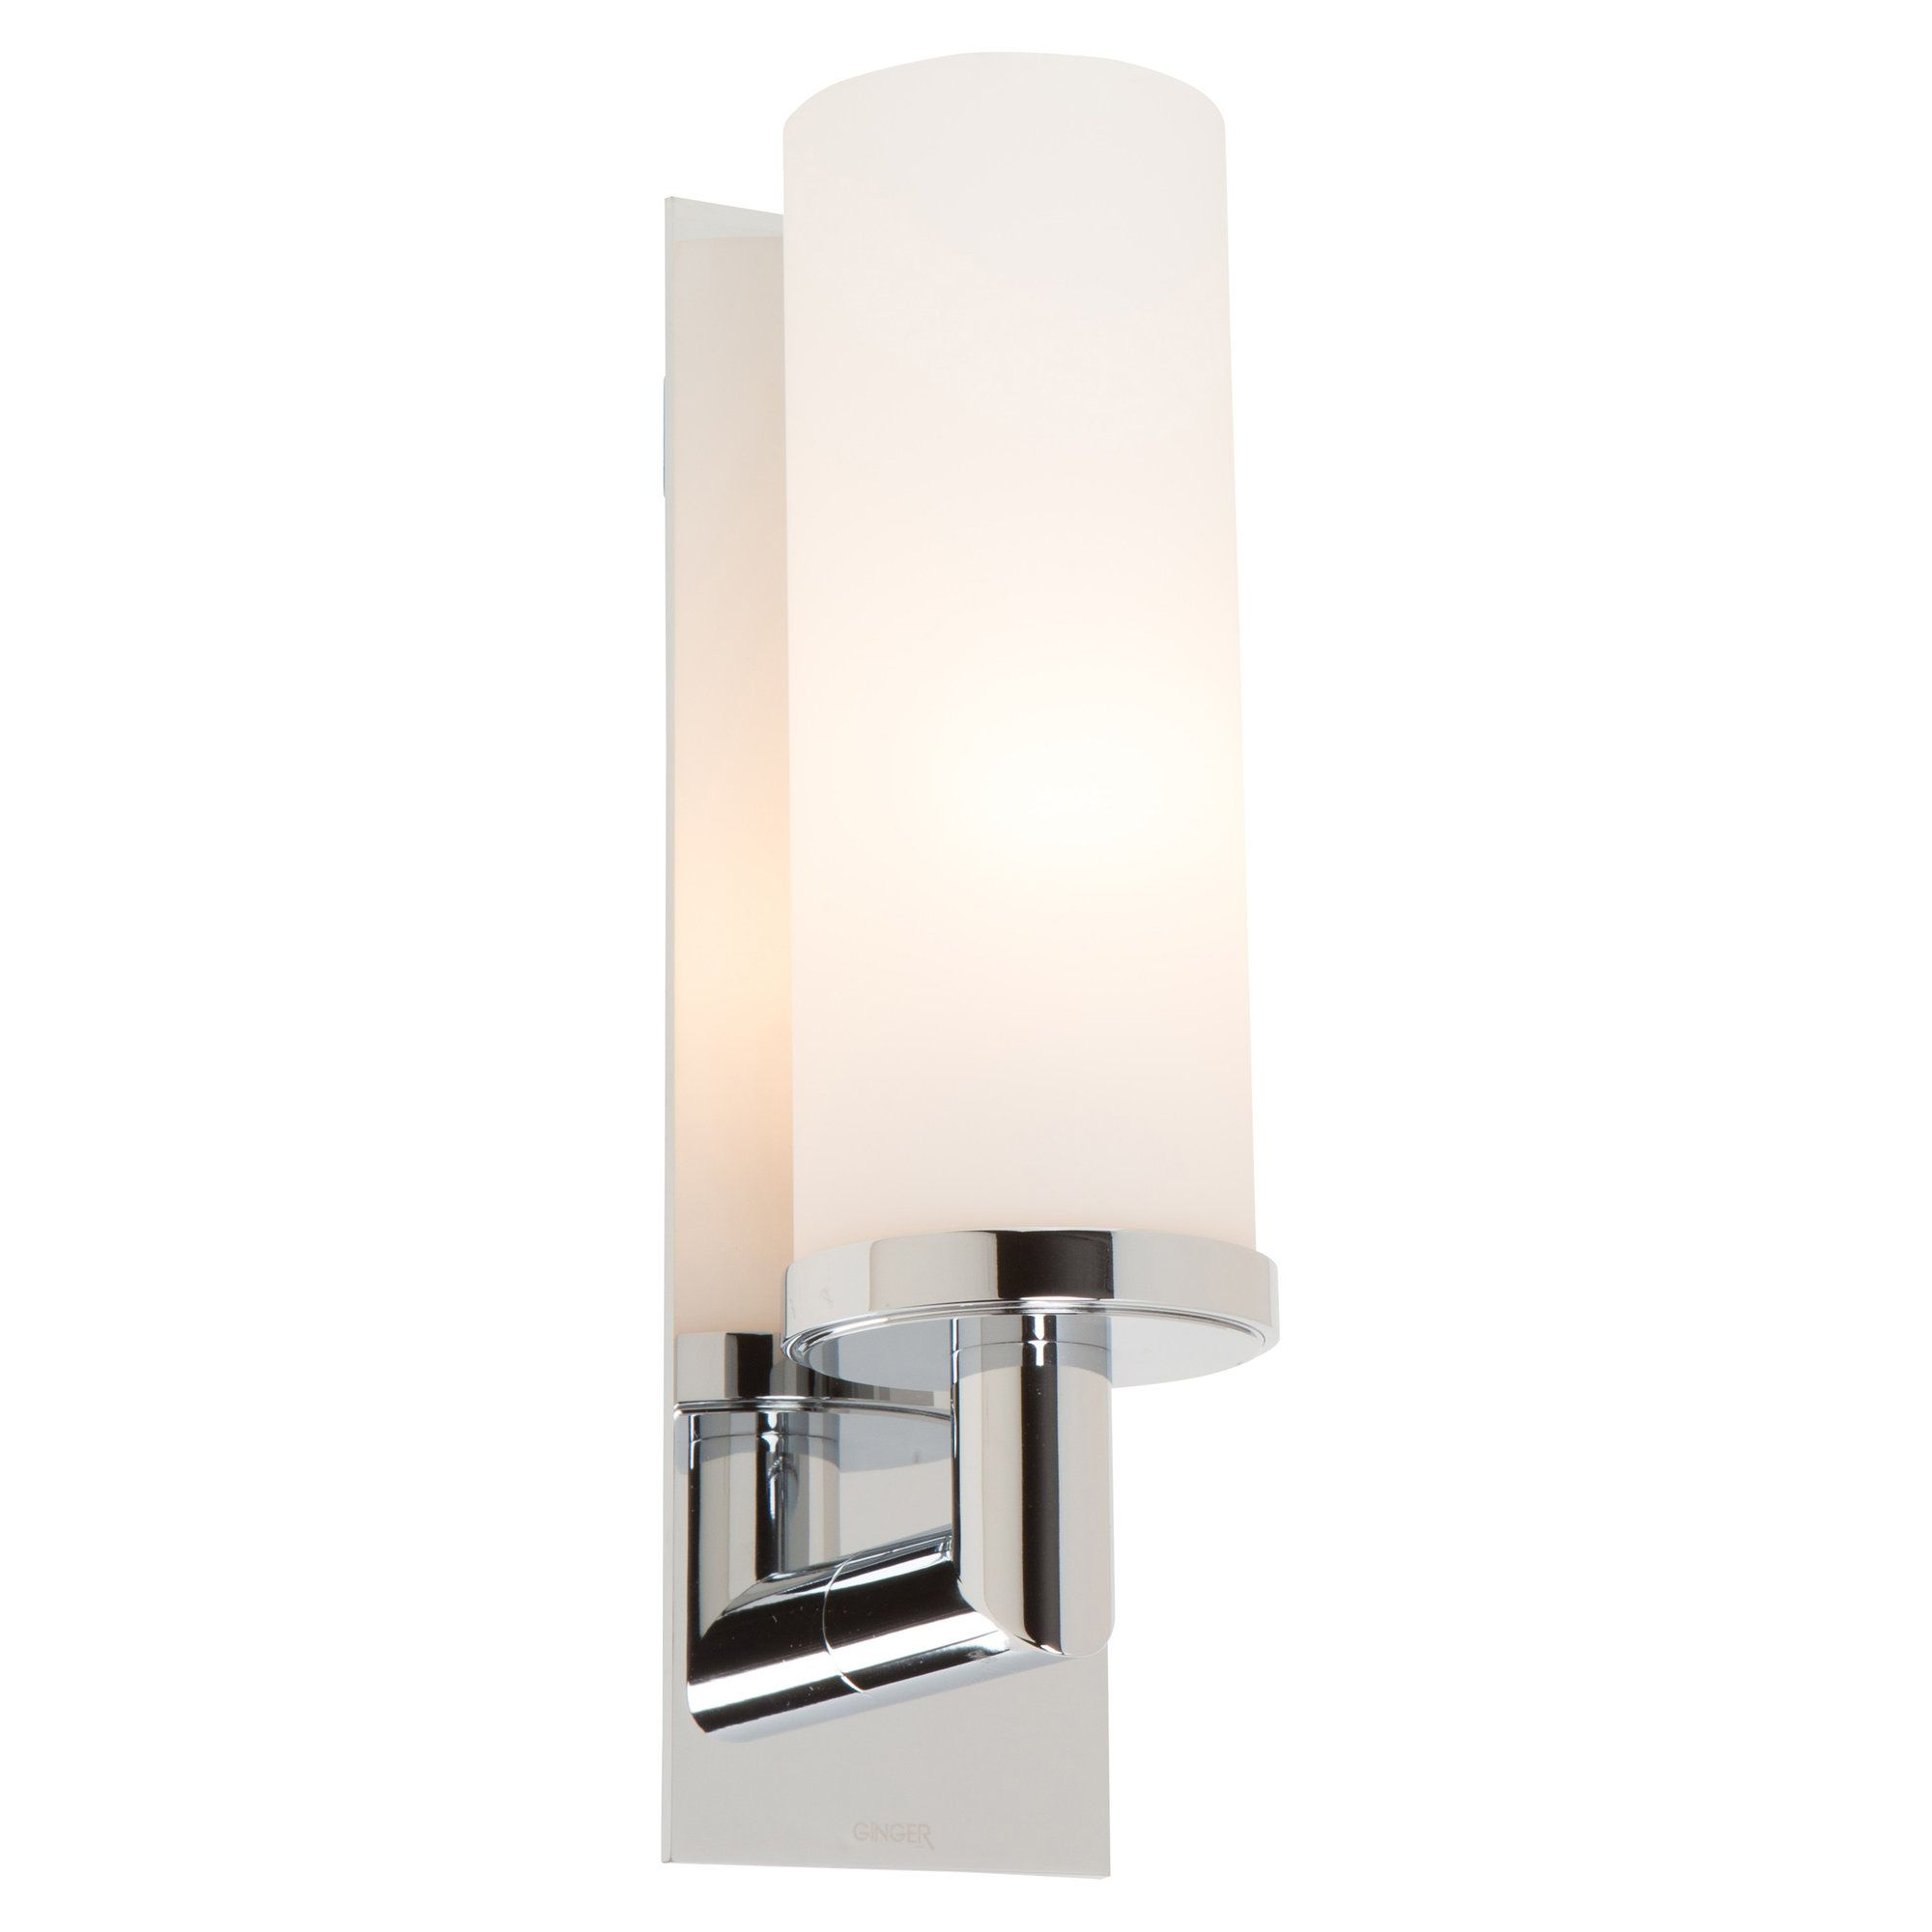 Surface light wall sconce products pinterest light walls